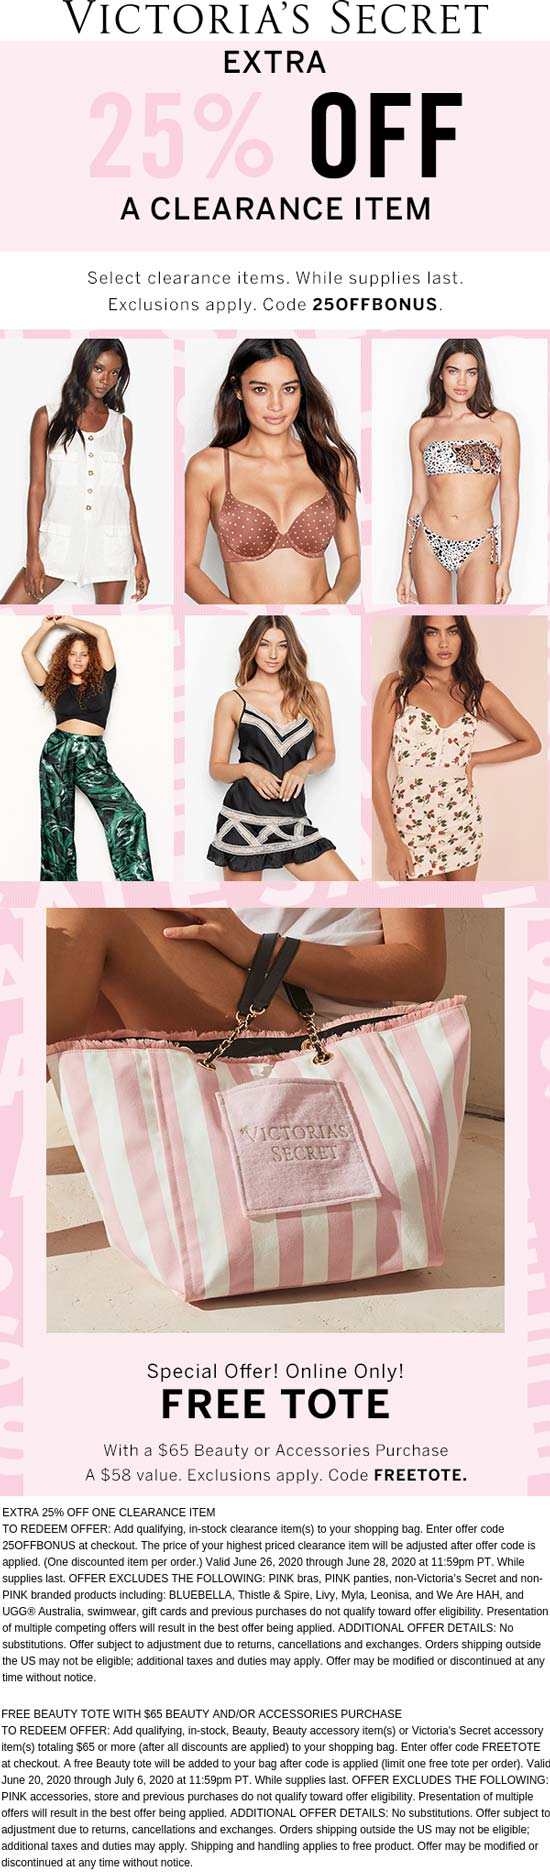 Victorias Secret stores Coupon  Extra 25% off a clearance item + free tote at Victorias Secret via promo code 25OFFBONUS or FREETOTE #victoriassecret